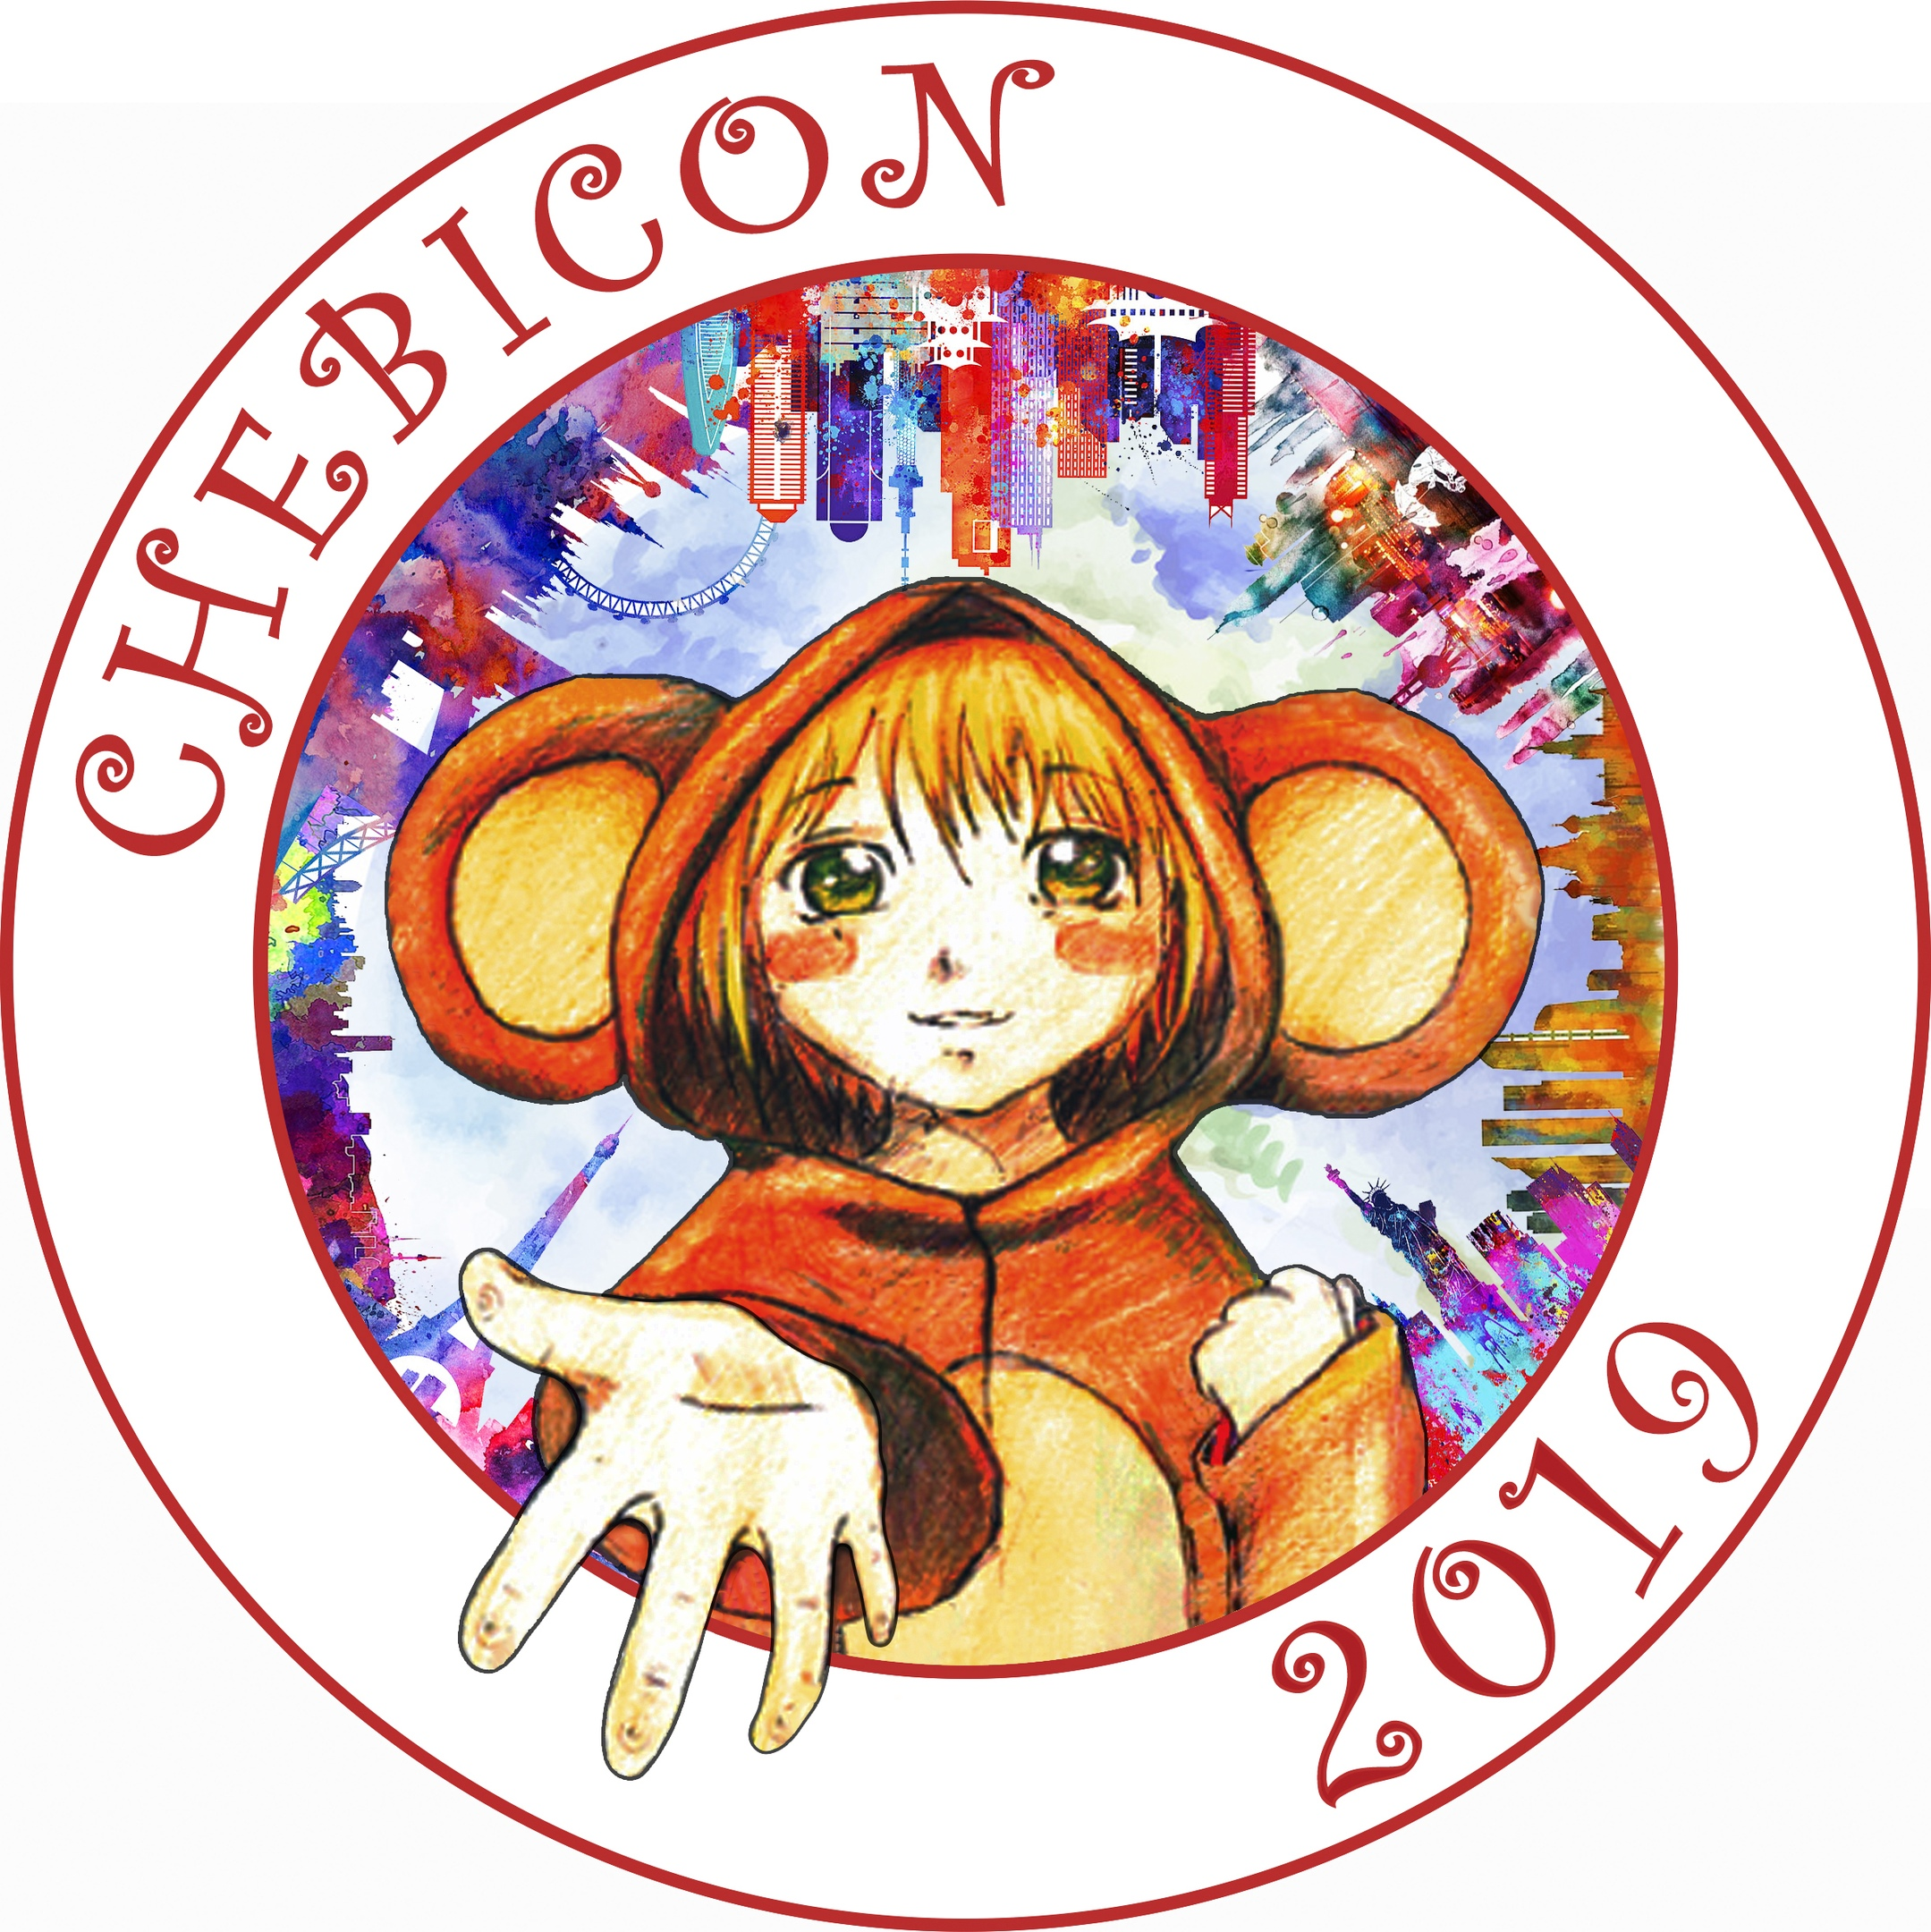 CHEBICON 2019 Around the World